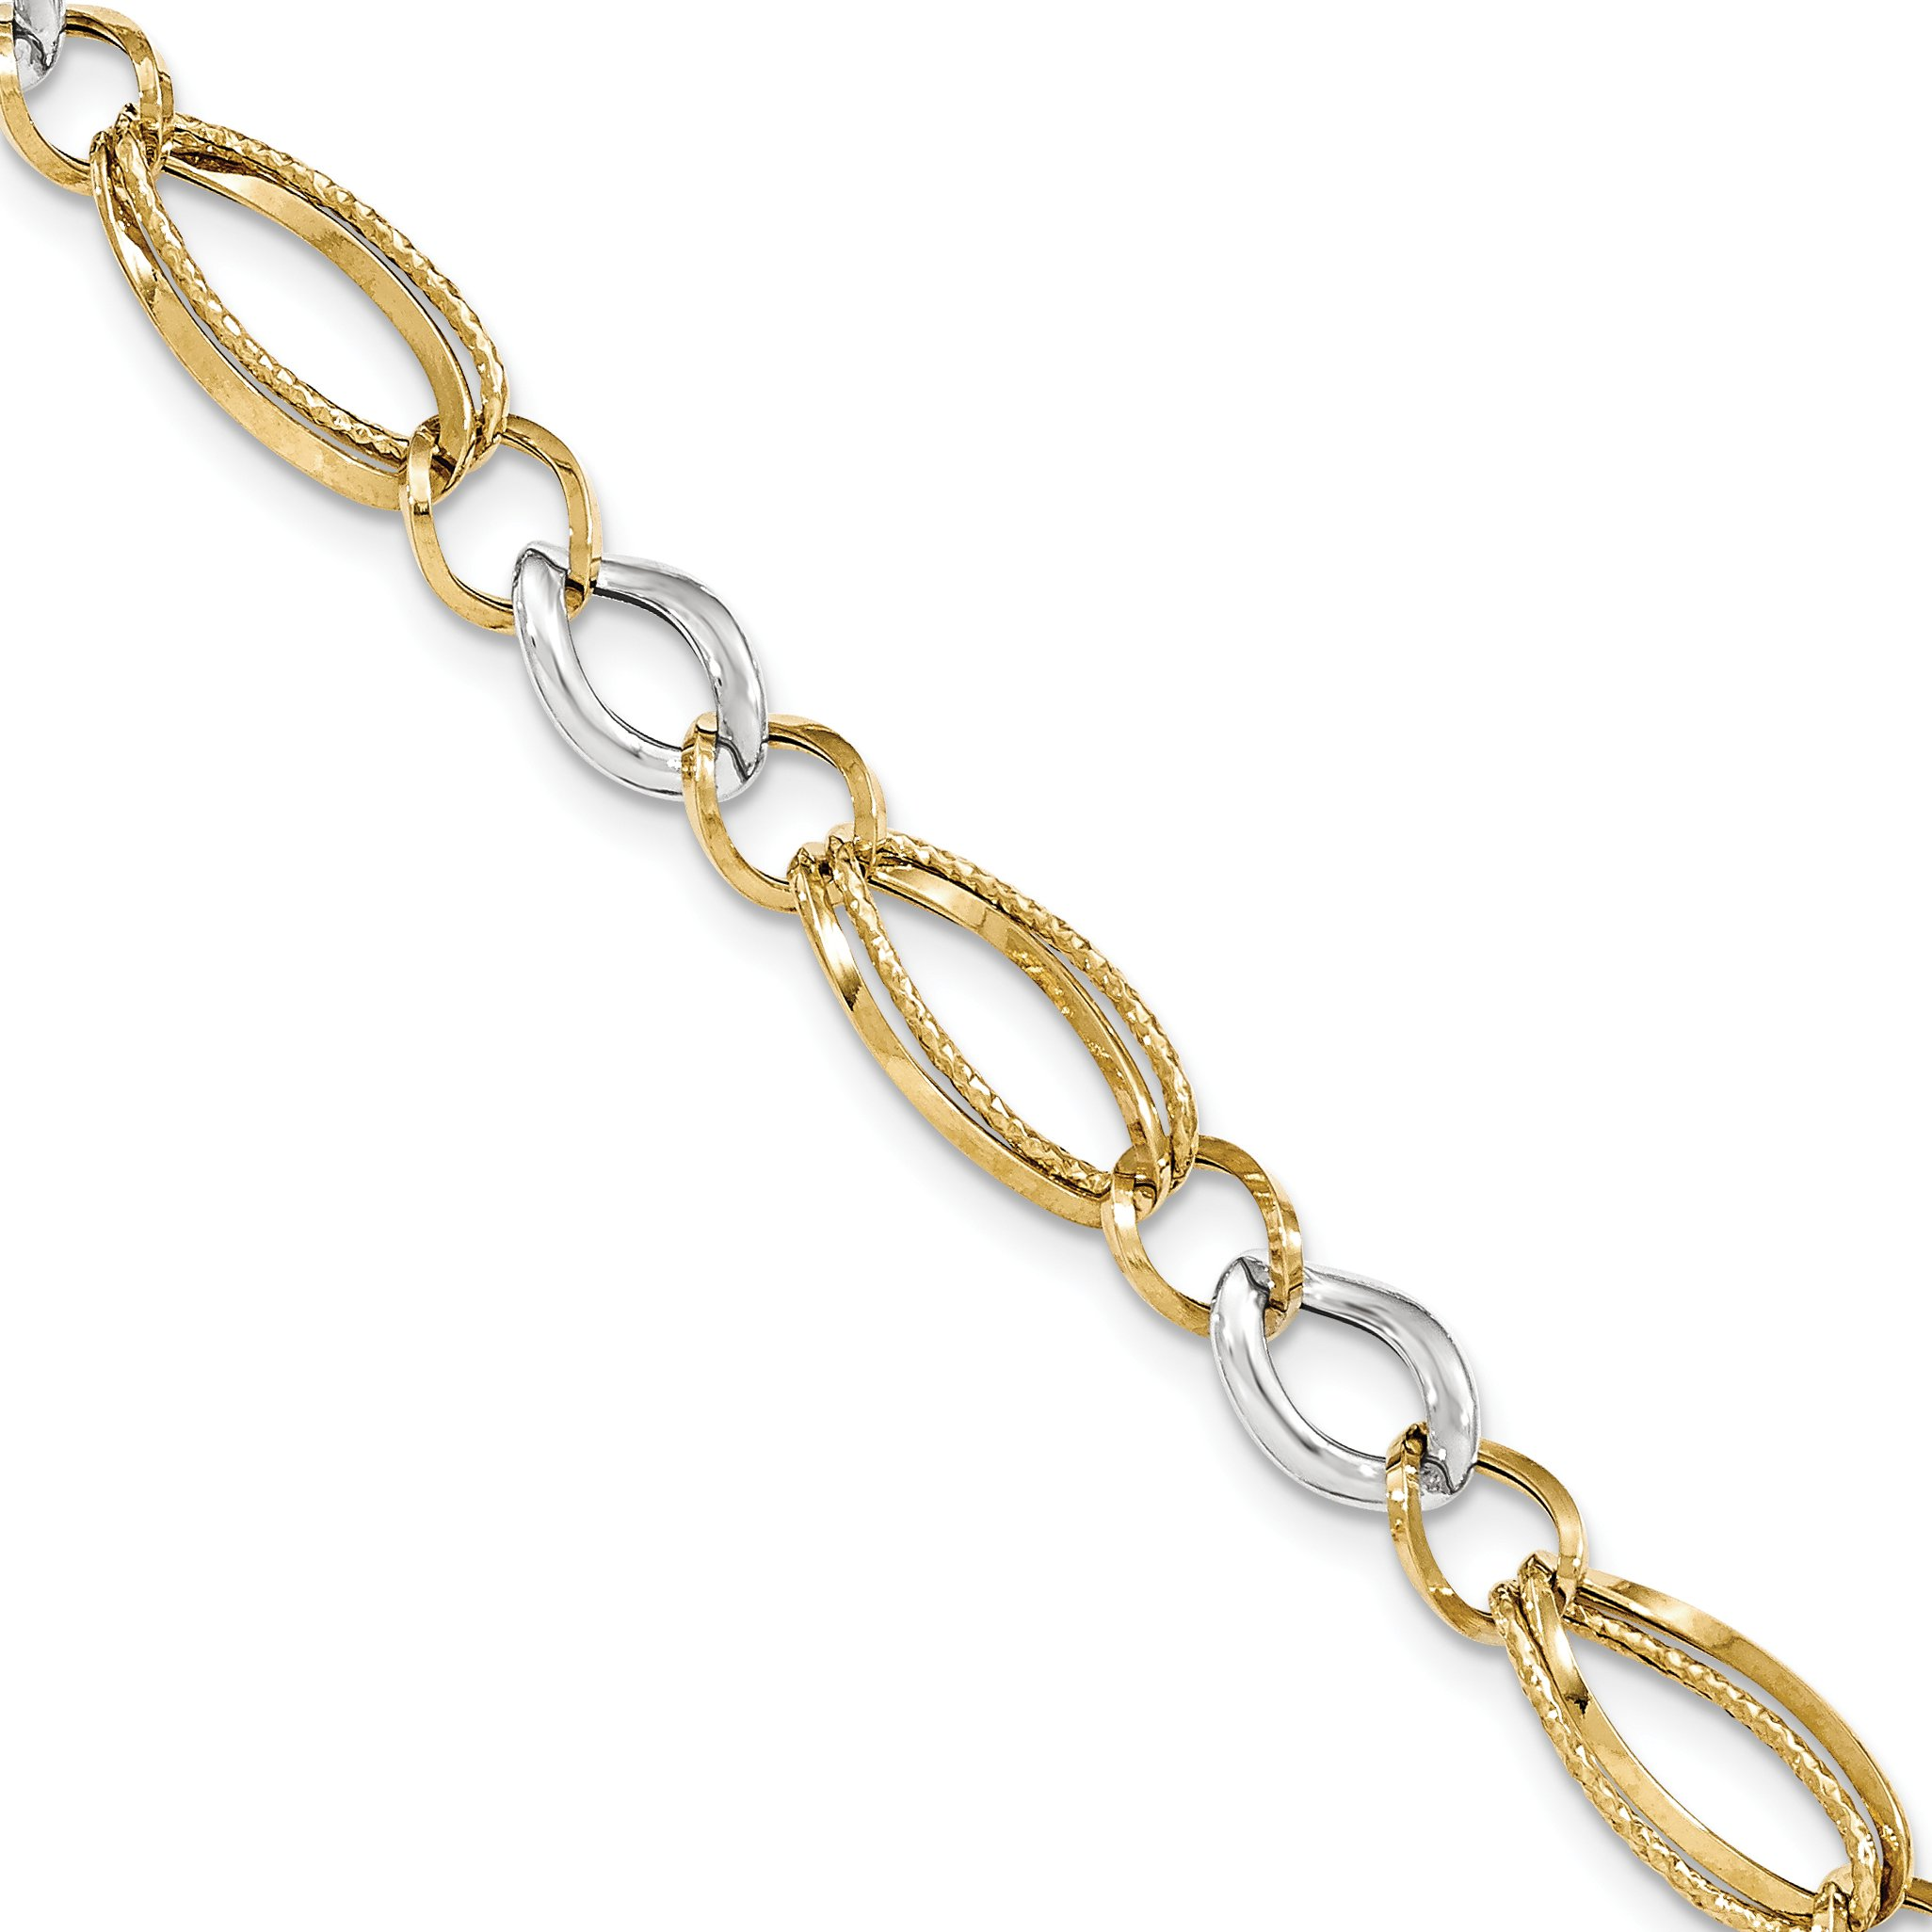 ICE CARATS 14k Two Tone Yellow Gold Textured Link Bracelet 8 Inch Fine Jewelry Gift Set For Women Heart